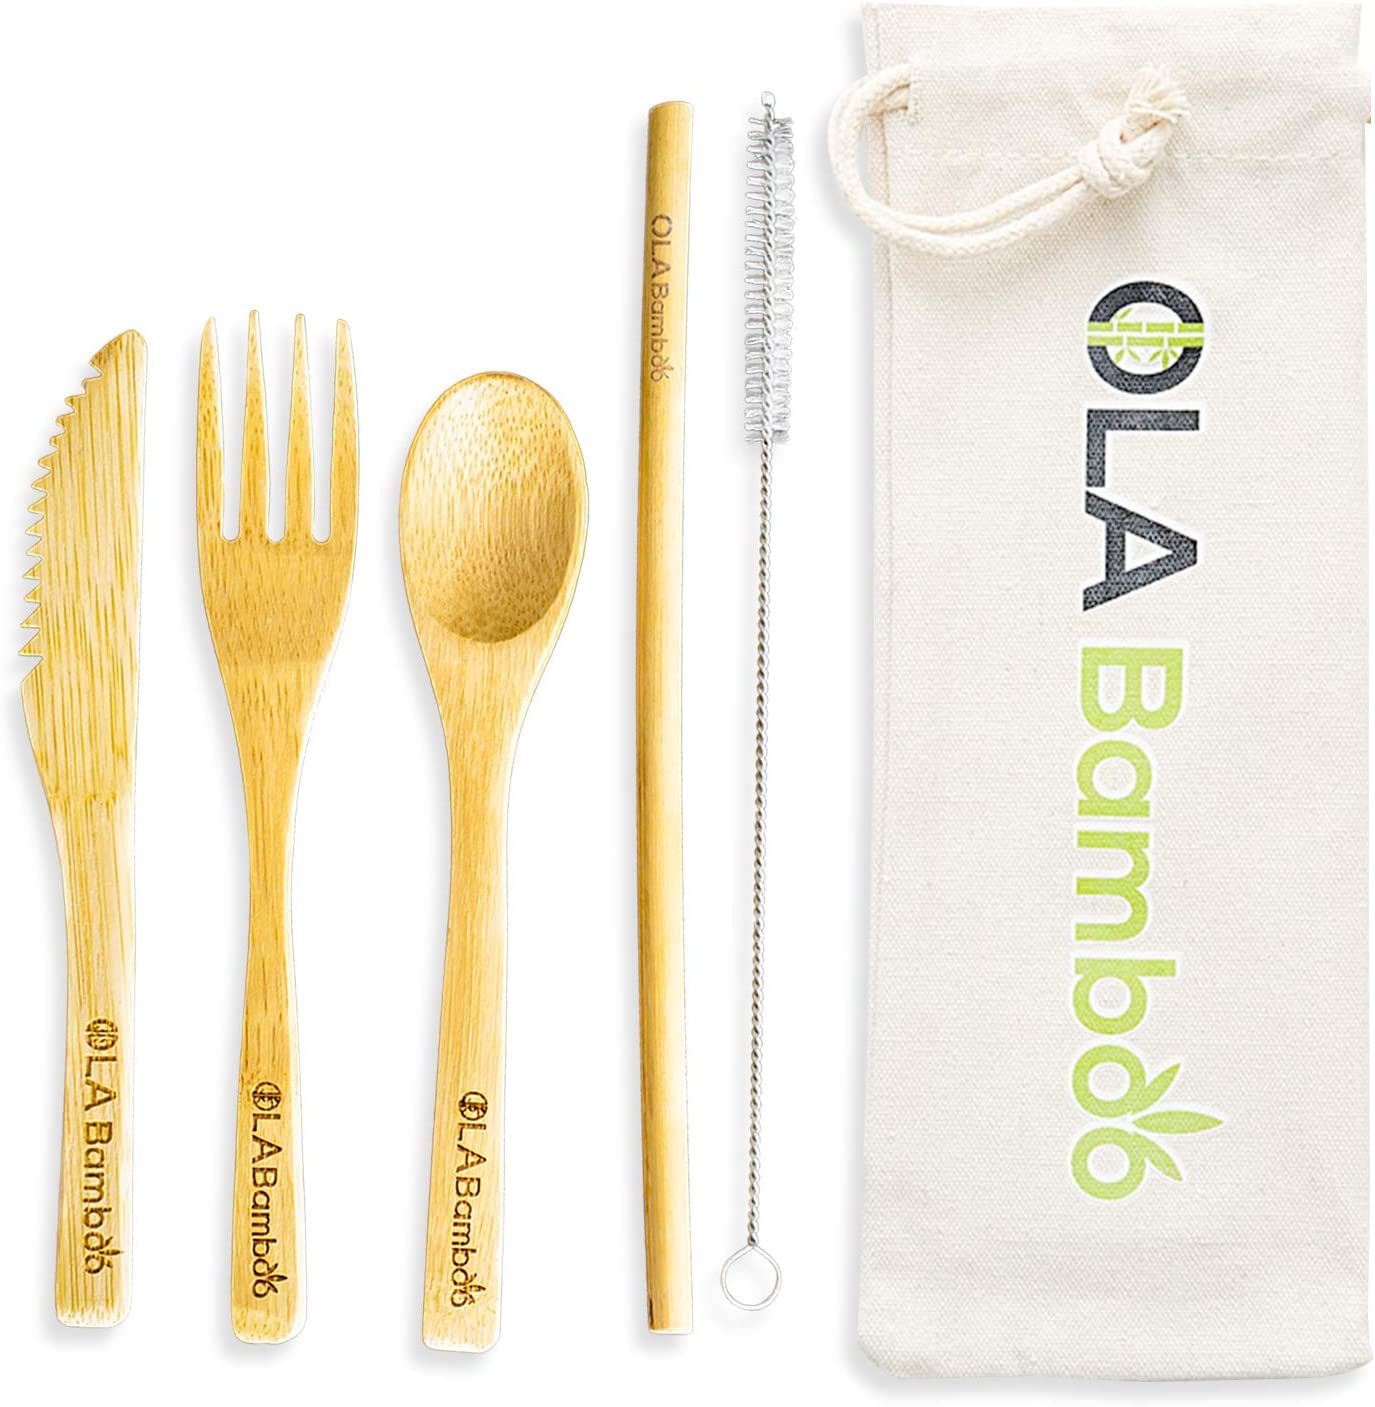 OLA Bamboo - Zero Waste Kit, 5-Piece Bamboo Cutlery Set, Reusable Bamboo Travel Utensil Set with Case, Includes a Bamboo Straw and Brush